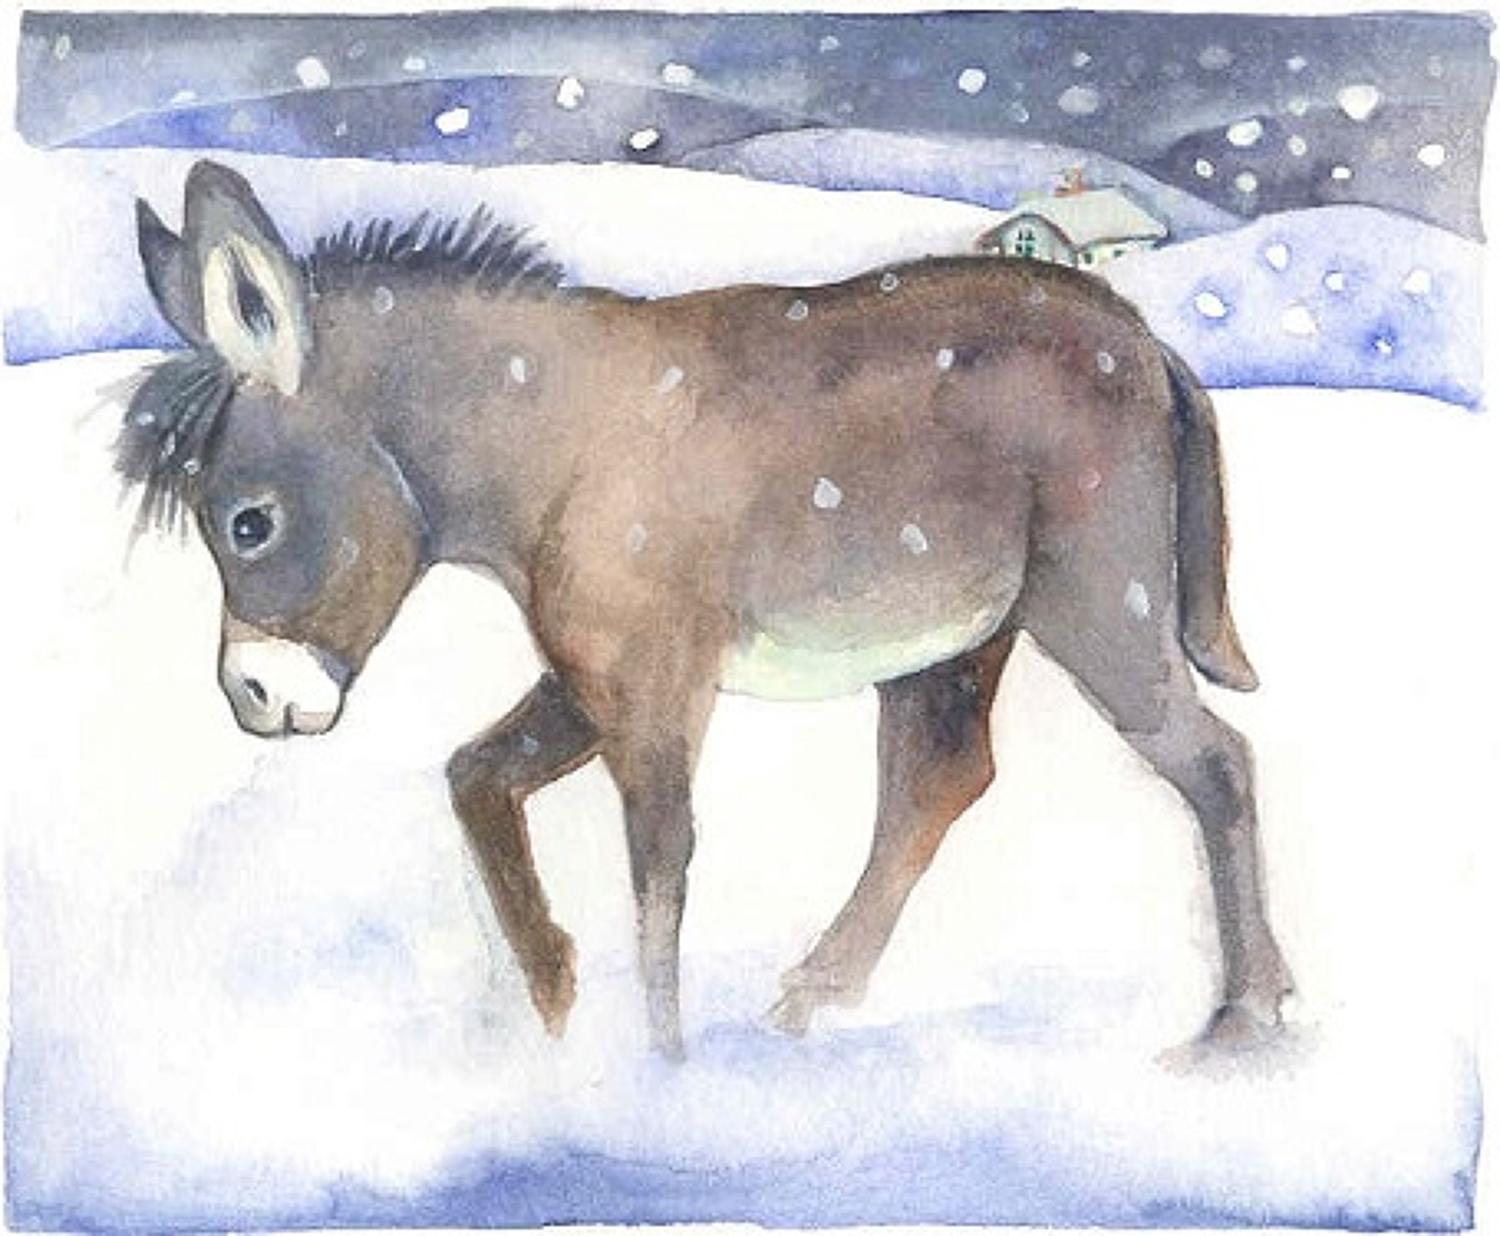 Donkey in the snow